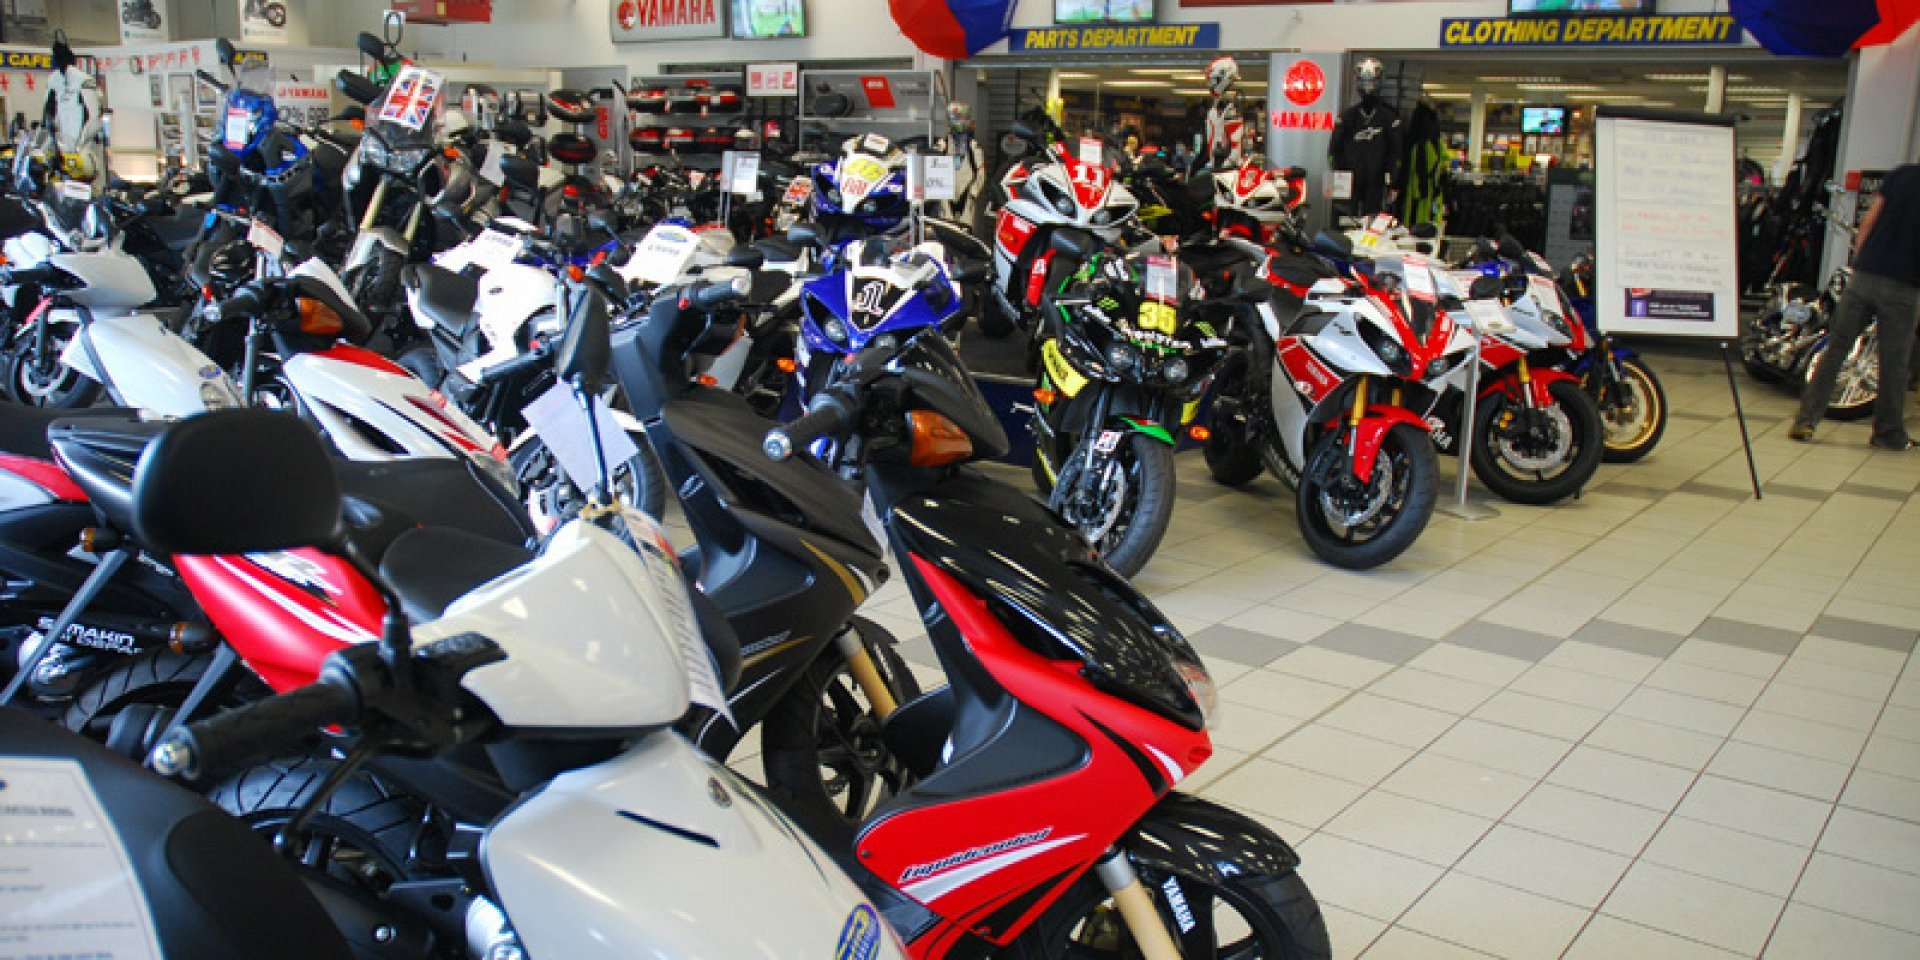 Motorcycle dealer used and new bikes for sale clothing for Yamaha parts dealer near me